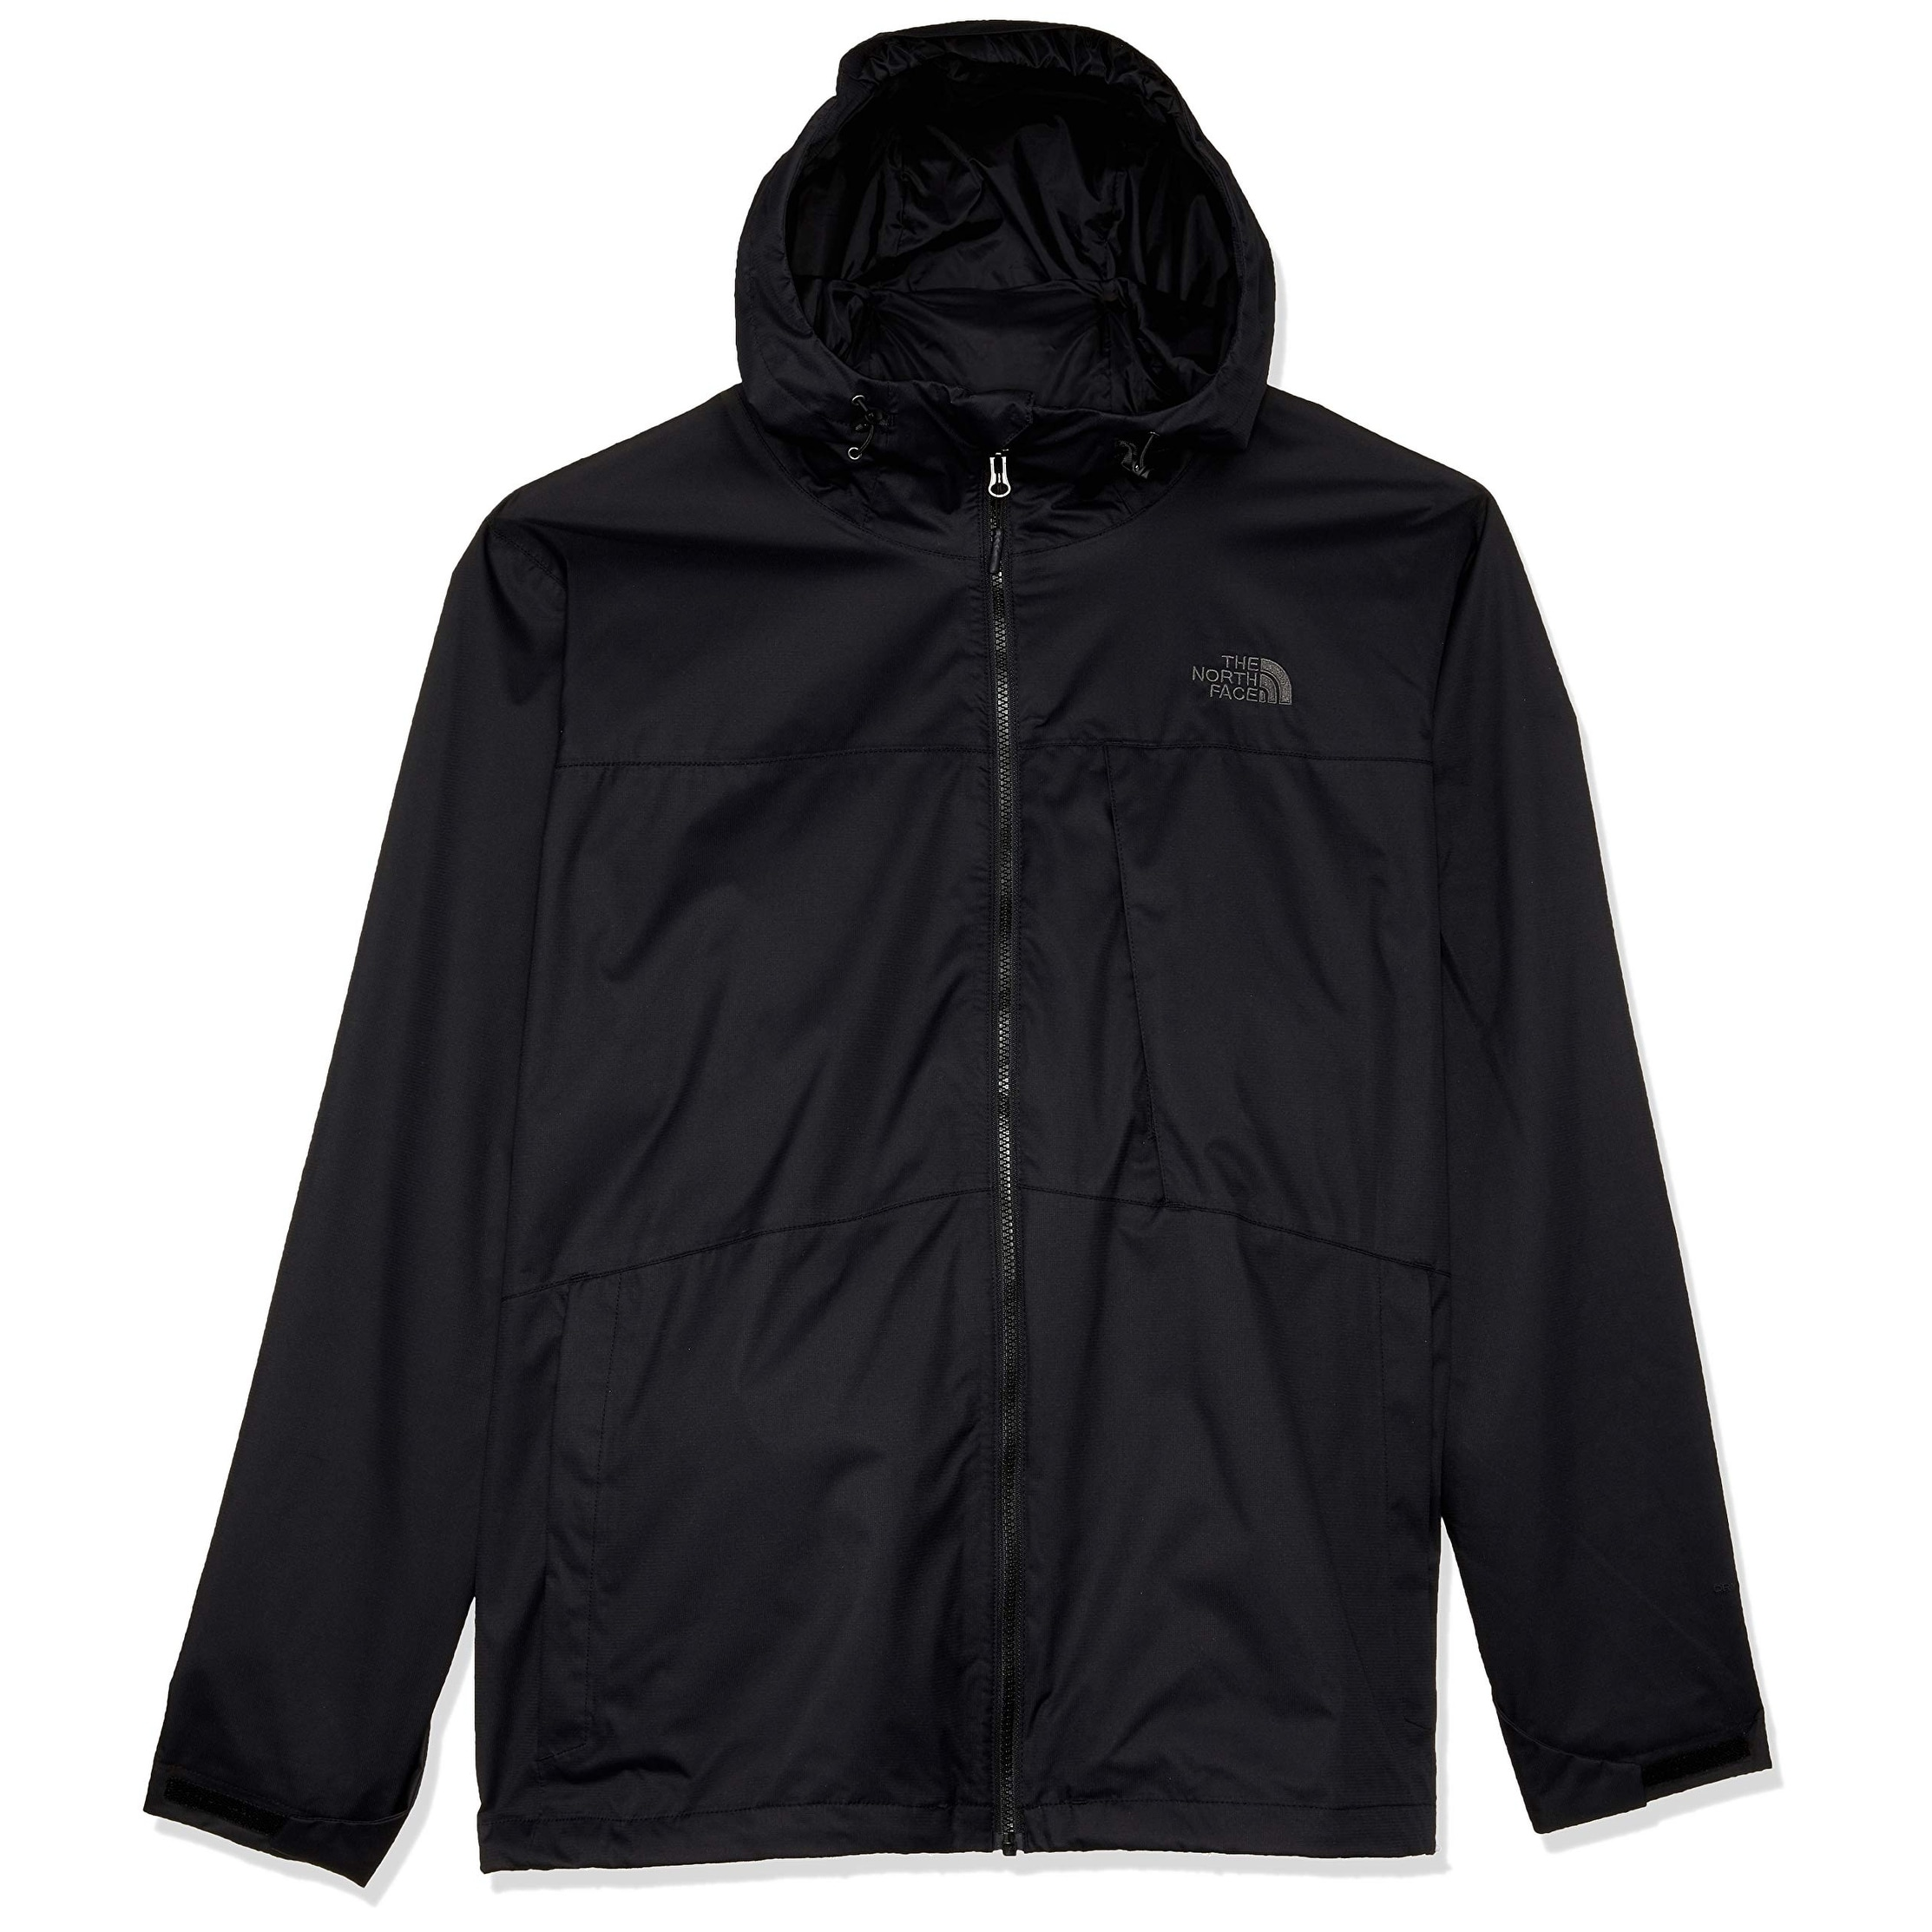 abb9bee65637 Buy The North Face Jackets Online at Overstock